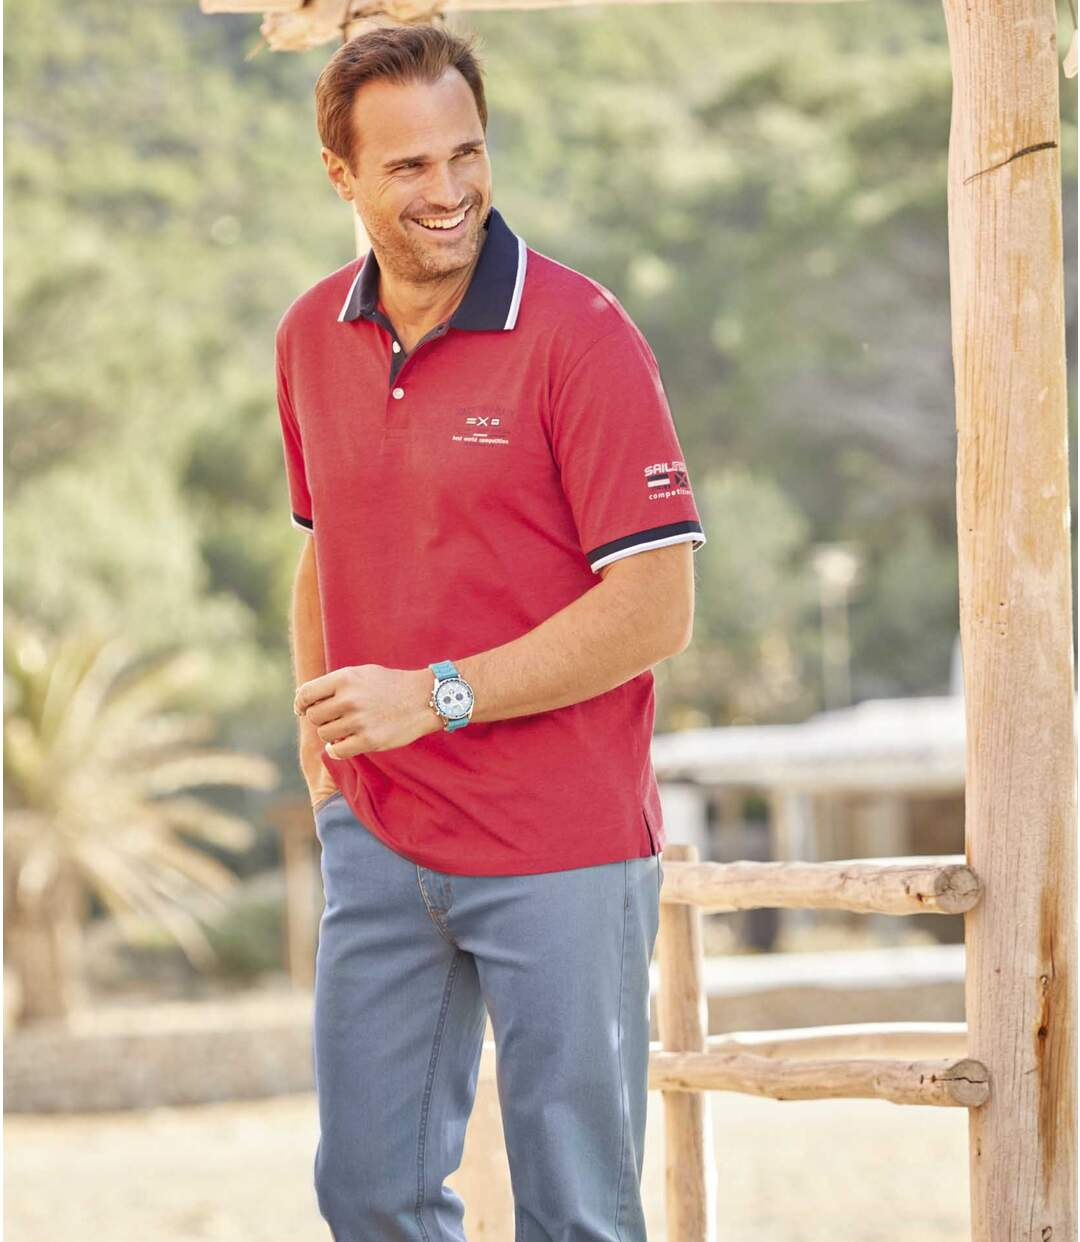 Pack of 2 Men's Yachting Race Polo Shirts - Red Blue